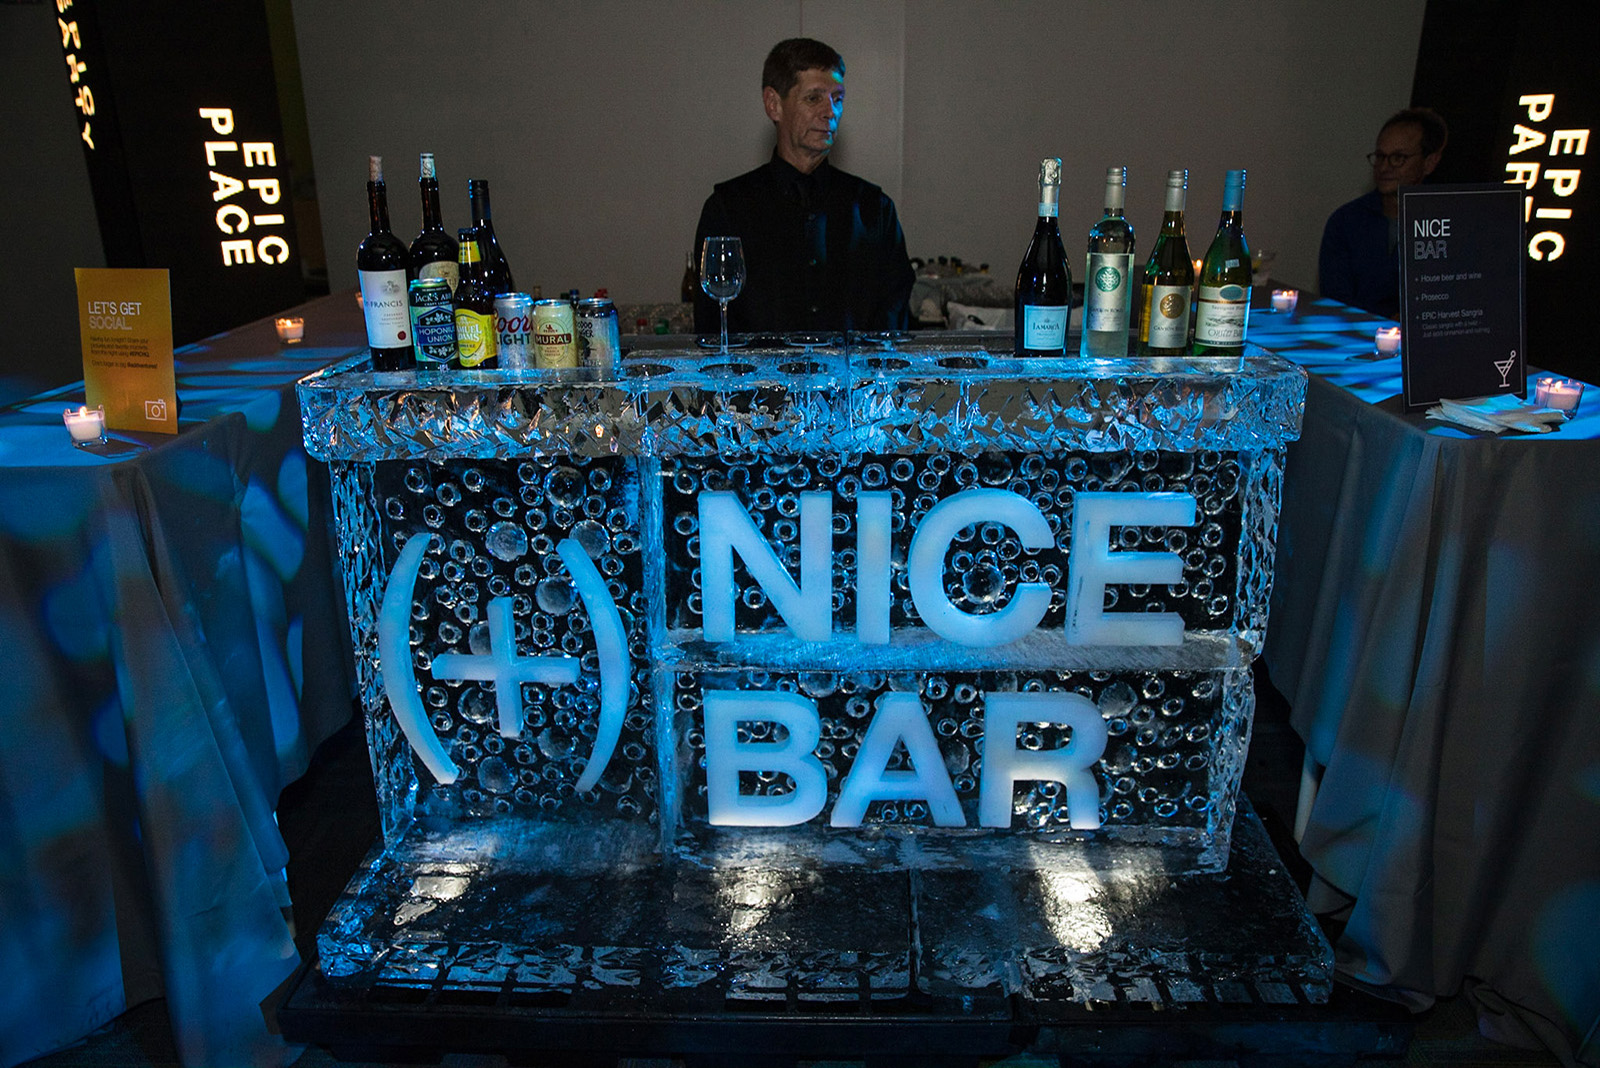 A bar made of a block of ice with a bartender behind it.